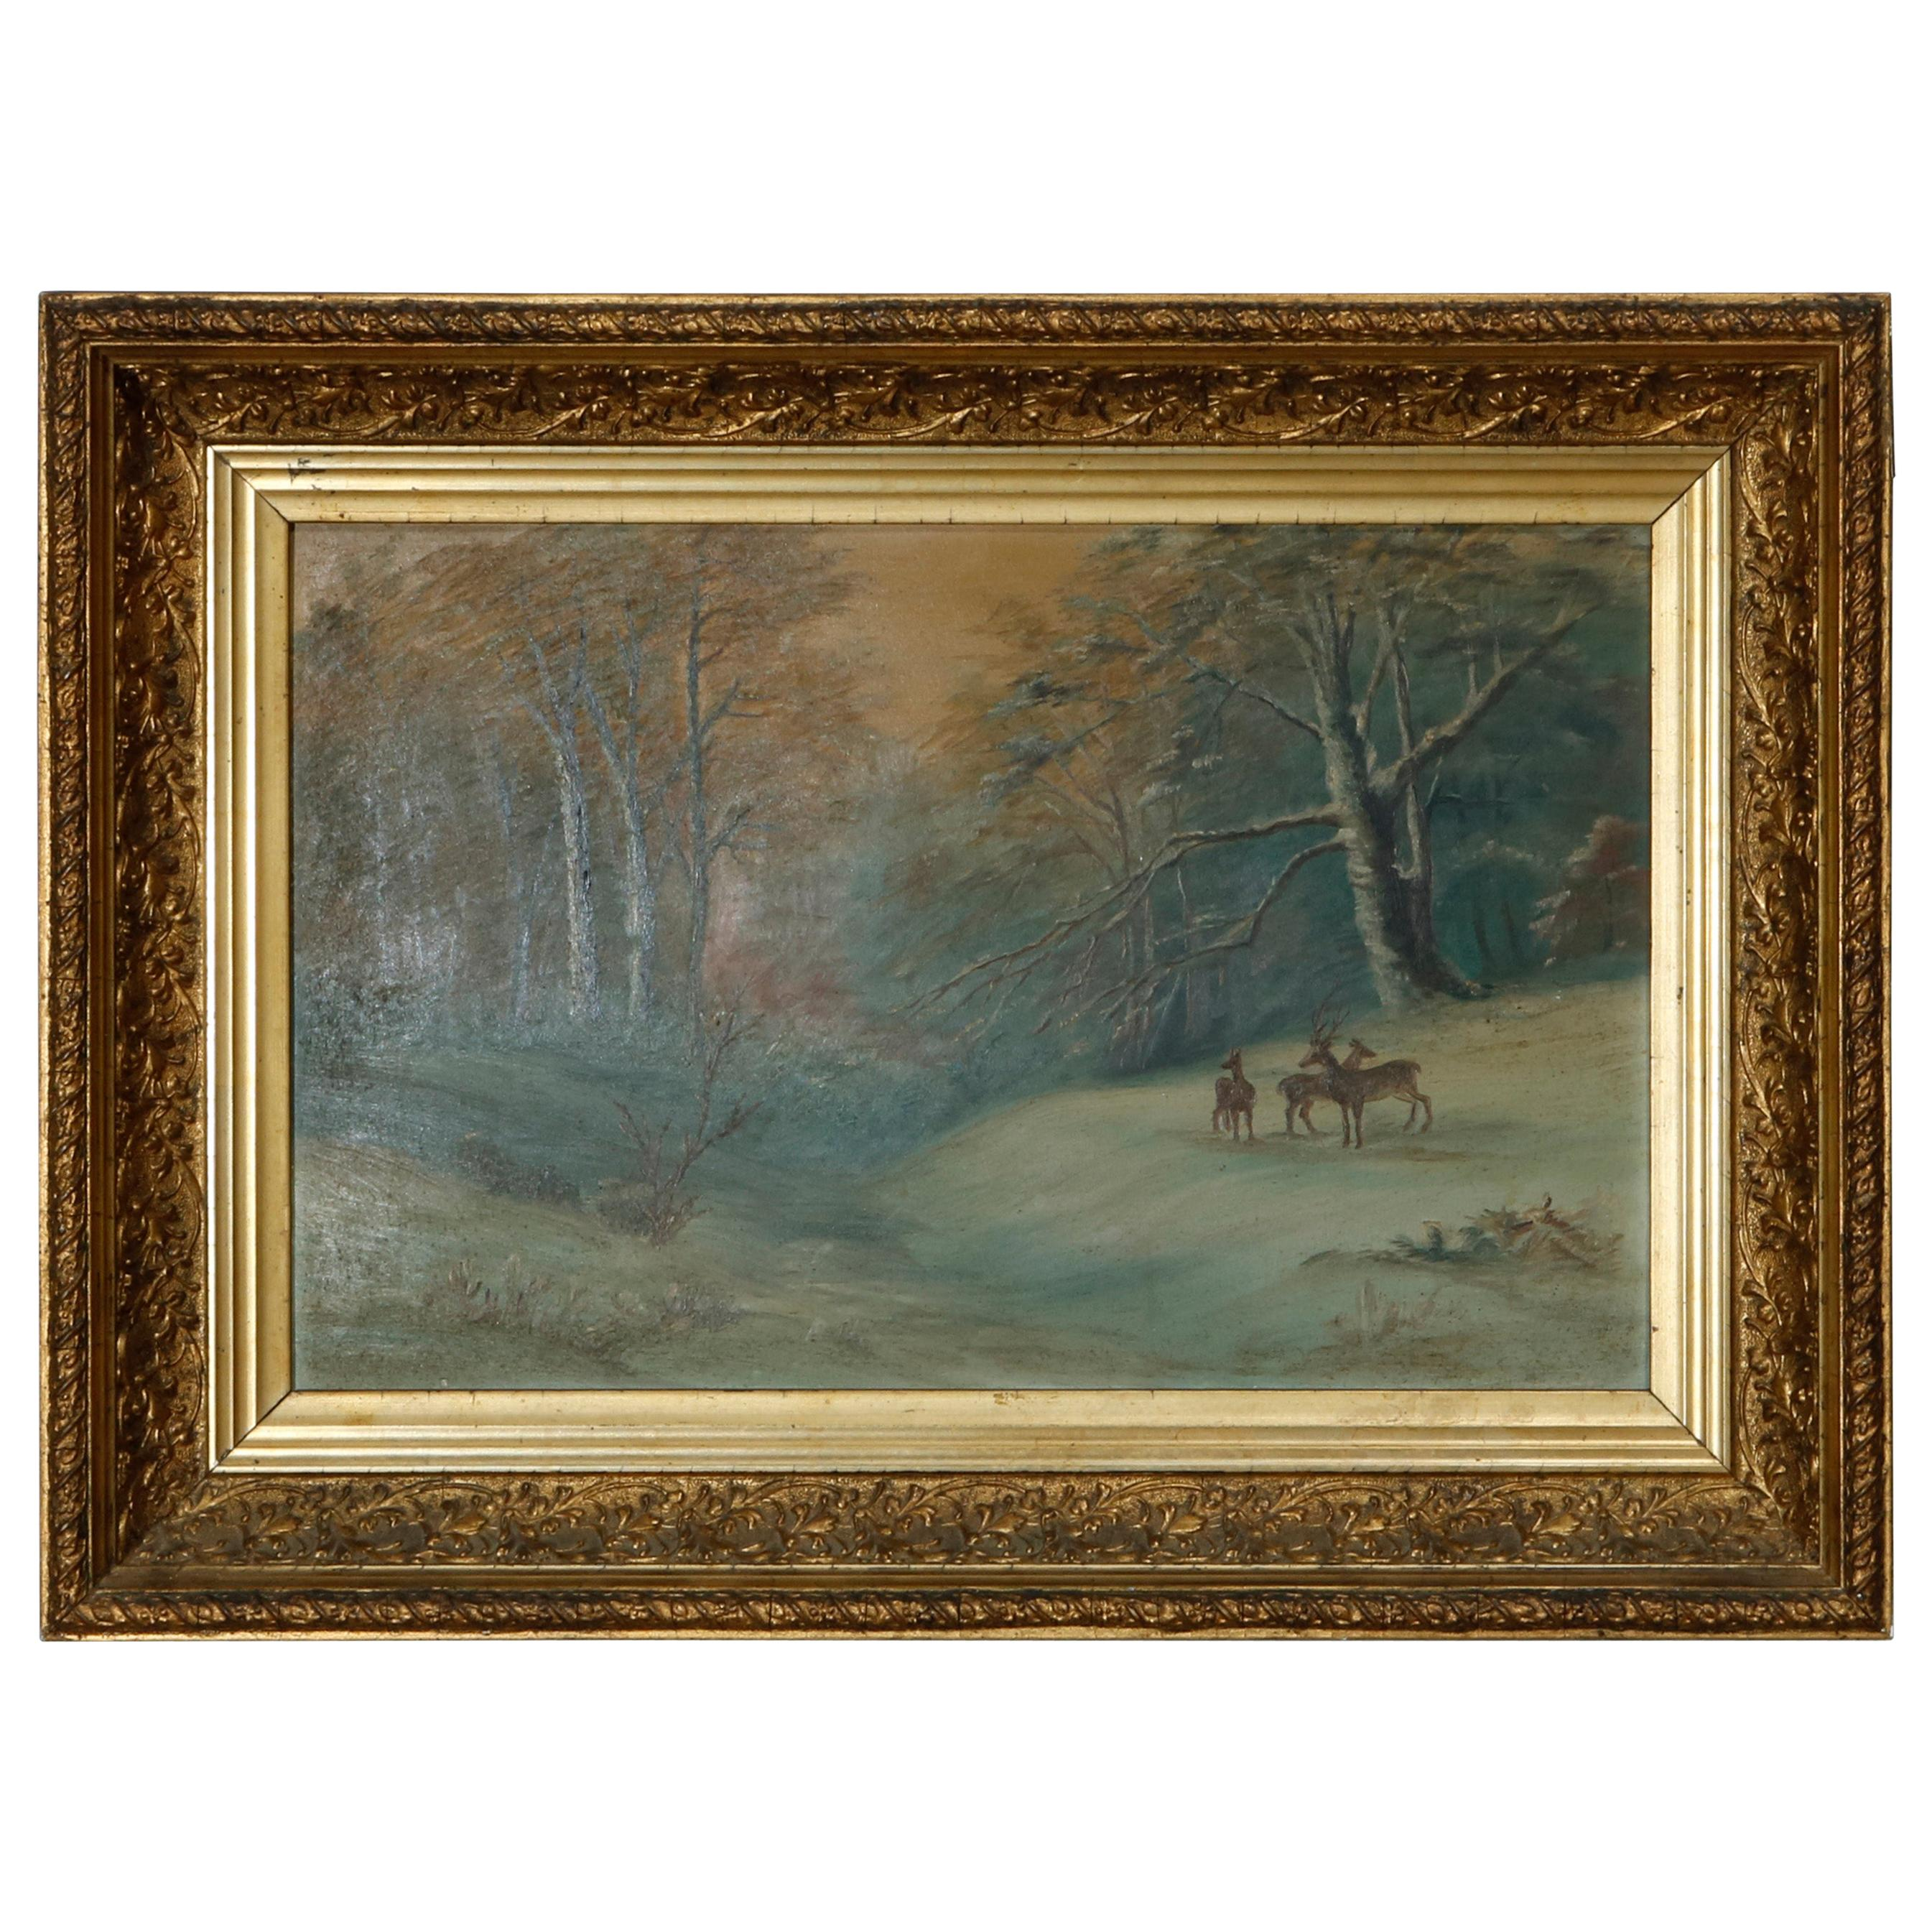 Antique Hudson River School Oil on Board Painting, Winter Scene with Deer, c1890